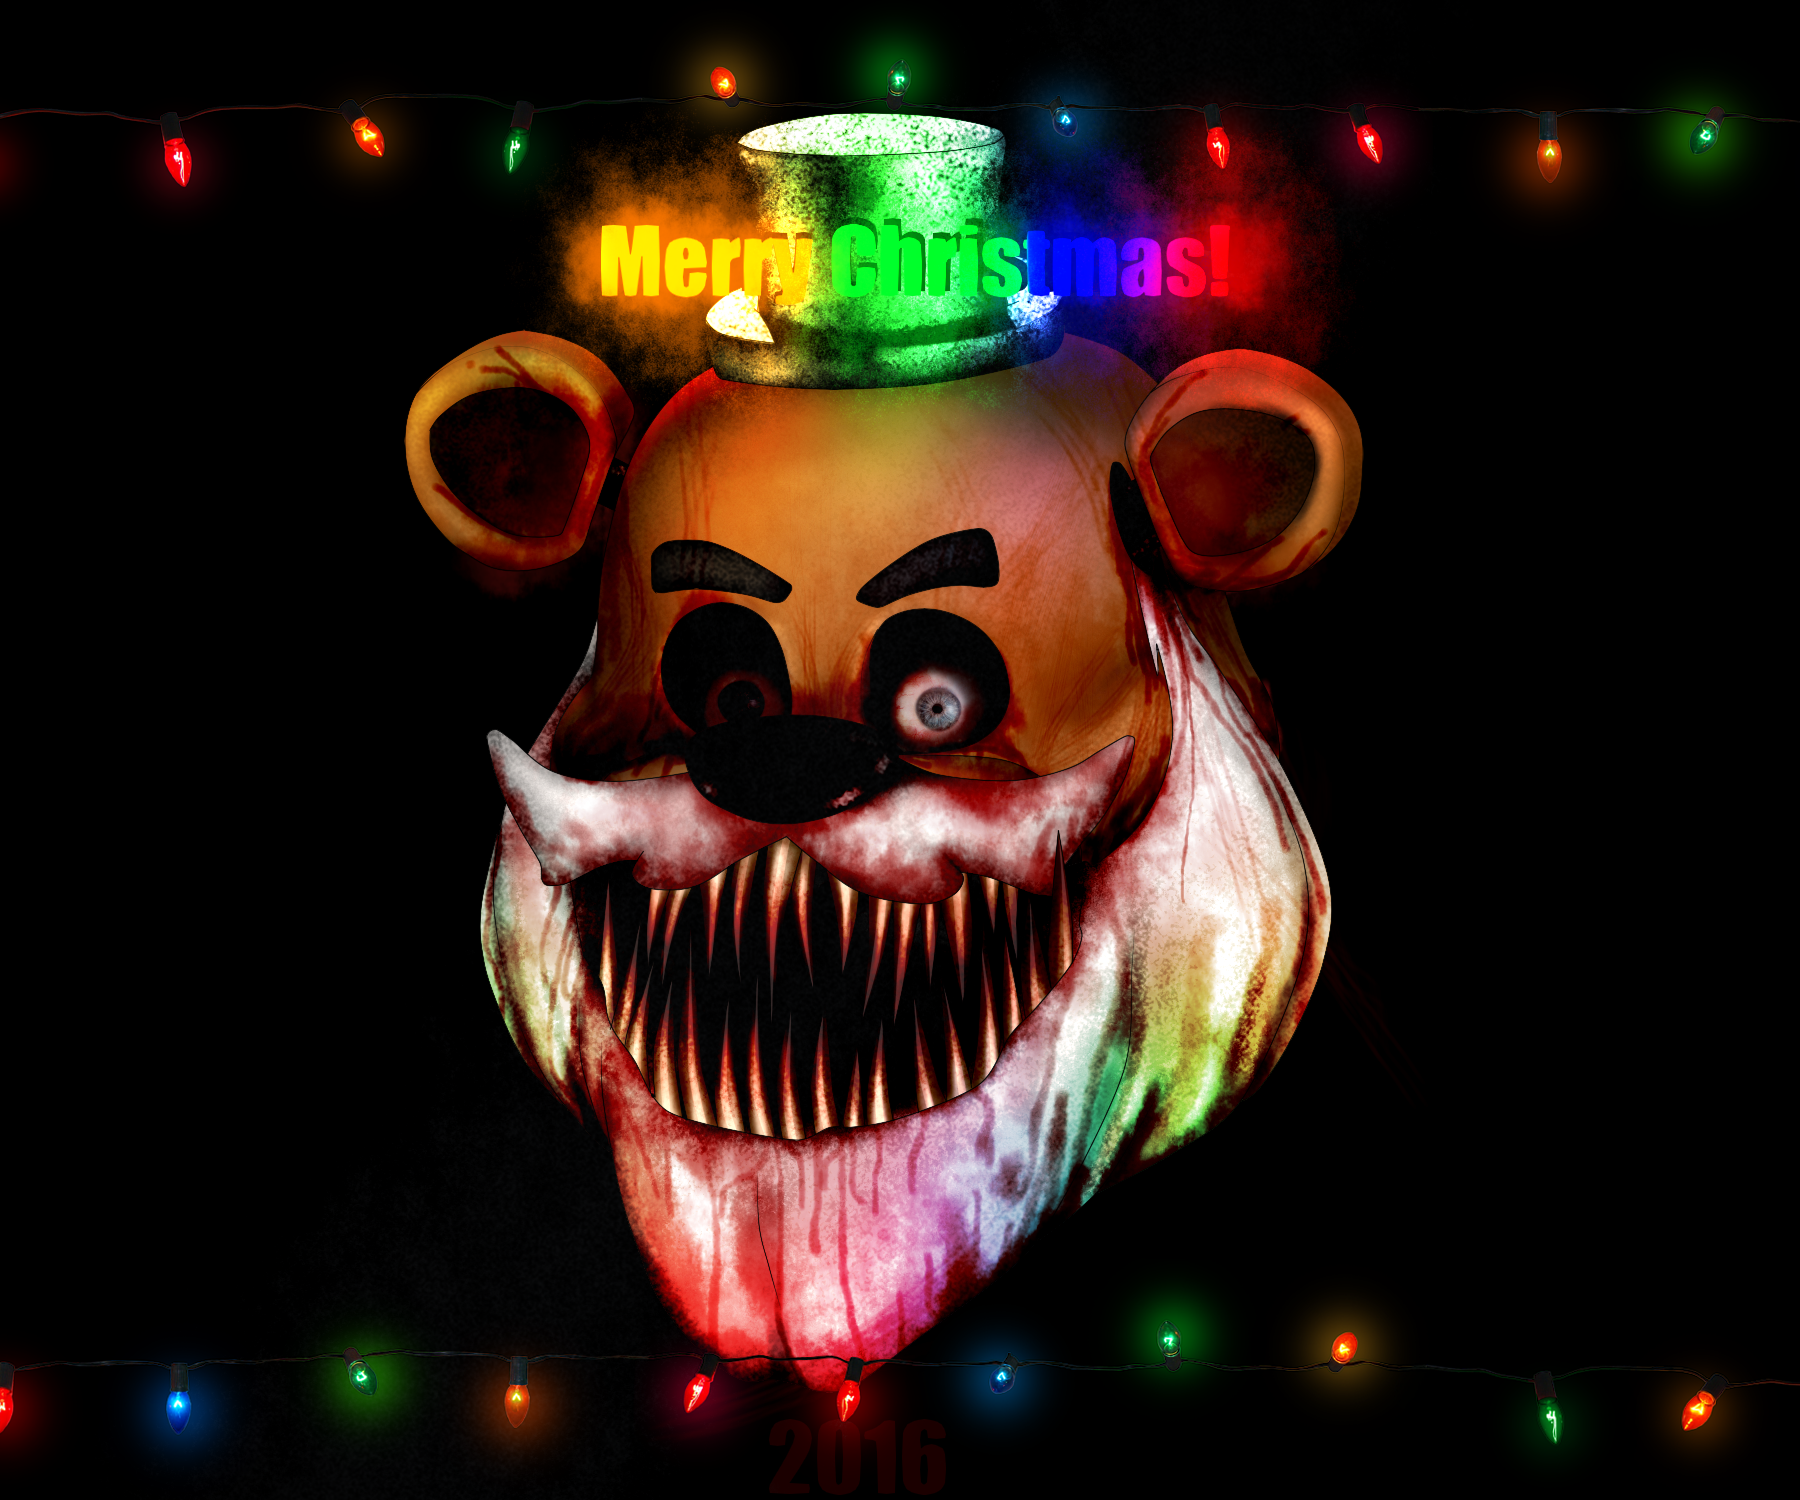 FNAF- Merry Christmas? Oh... Freddy by Christian2099 on DeviantArt